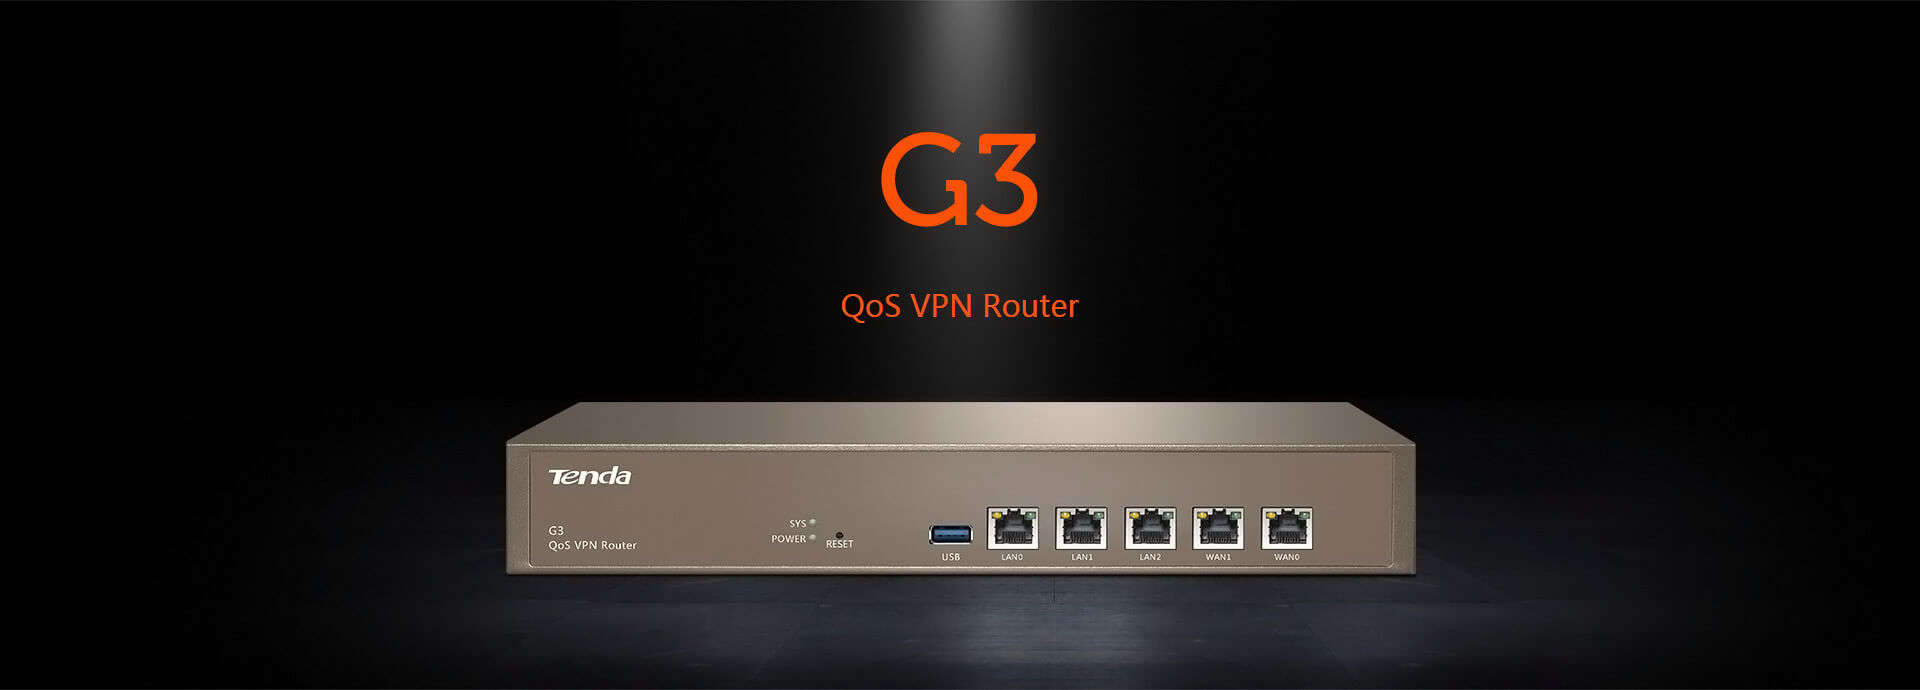 Tenda QOS VPN Router (Gateway) G3